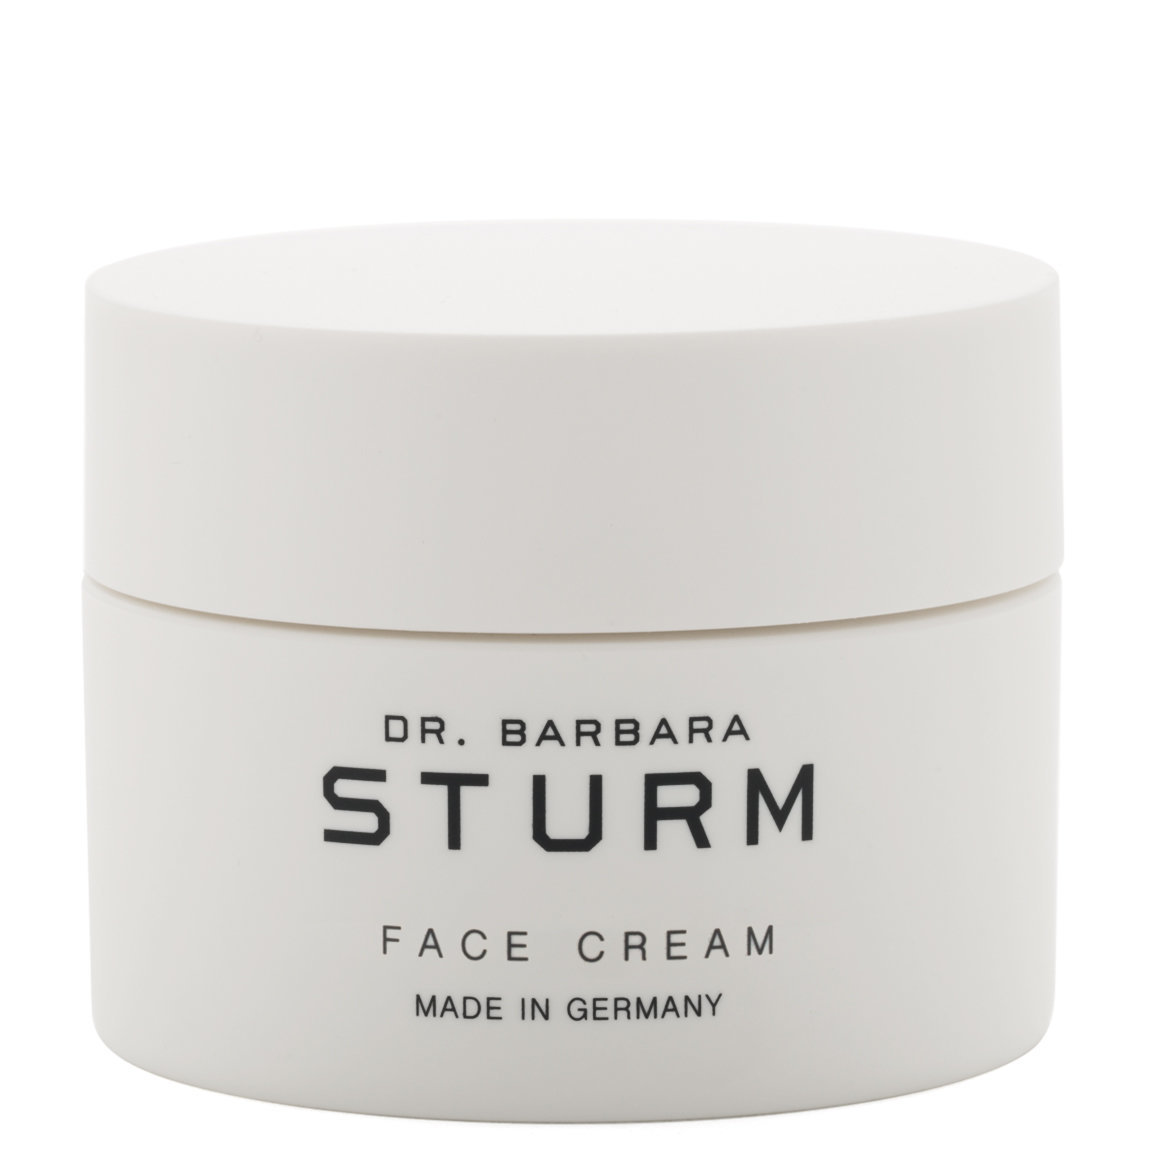 Dr. Barbara Sturm Face Cream  alternative view 1 - product swatch.